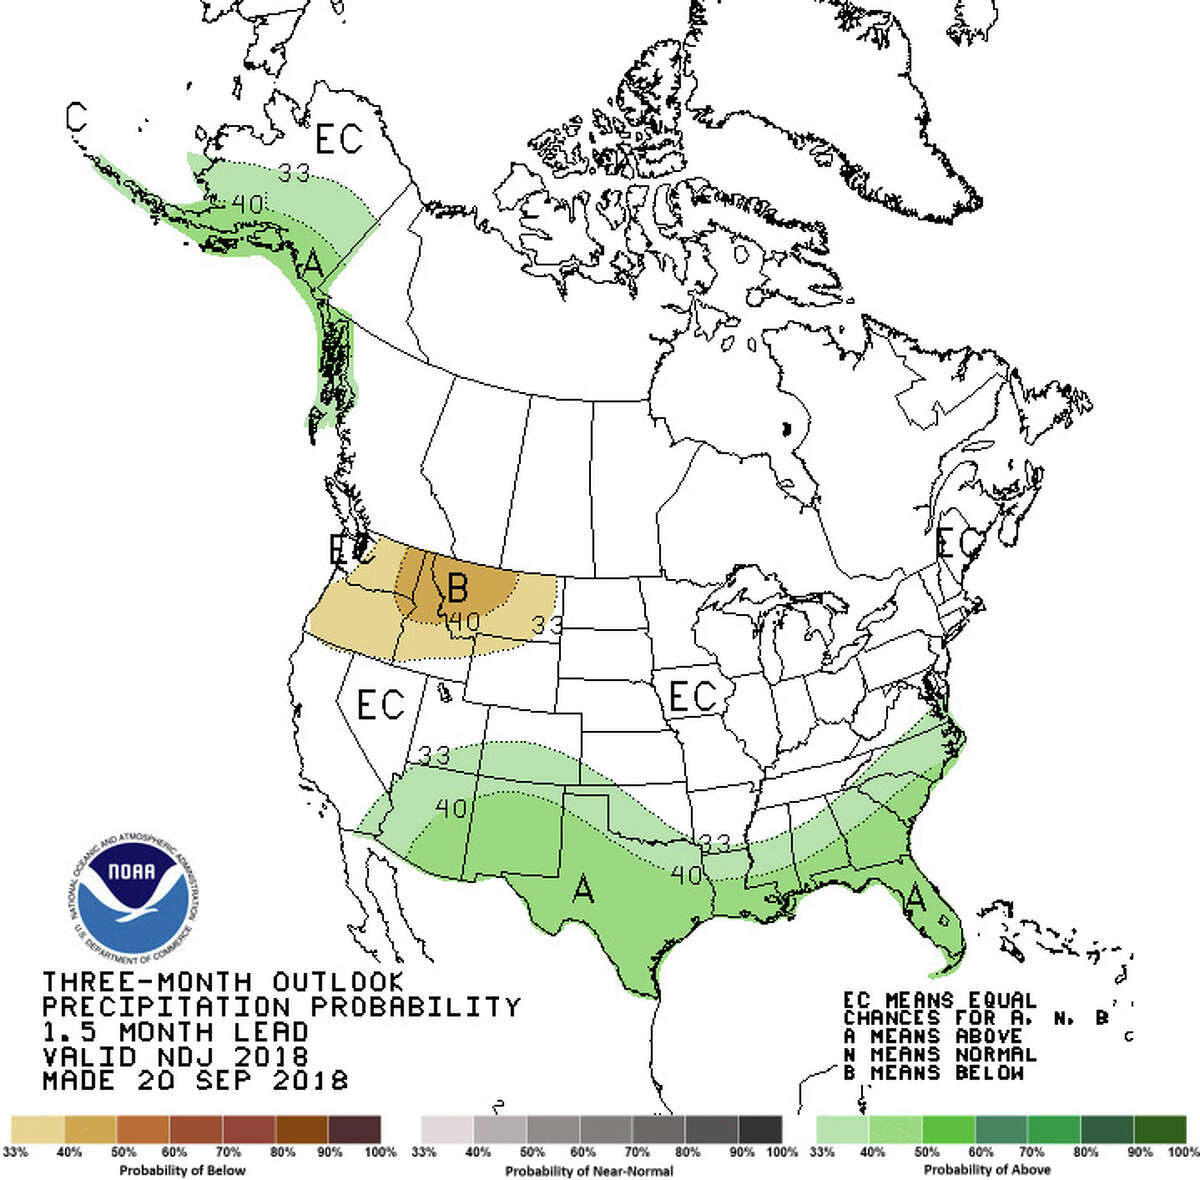 NOAA's three-month outlook shows the South and part of Alaska as wetter-than-normal, while the Northwest (except for most of Western Washington) as drier than normal. Adding in the likely effects of an expected El Nino, Washington may well be drier than normal. Keep clicking to see places where weather is getting worse thanks to climate change.